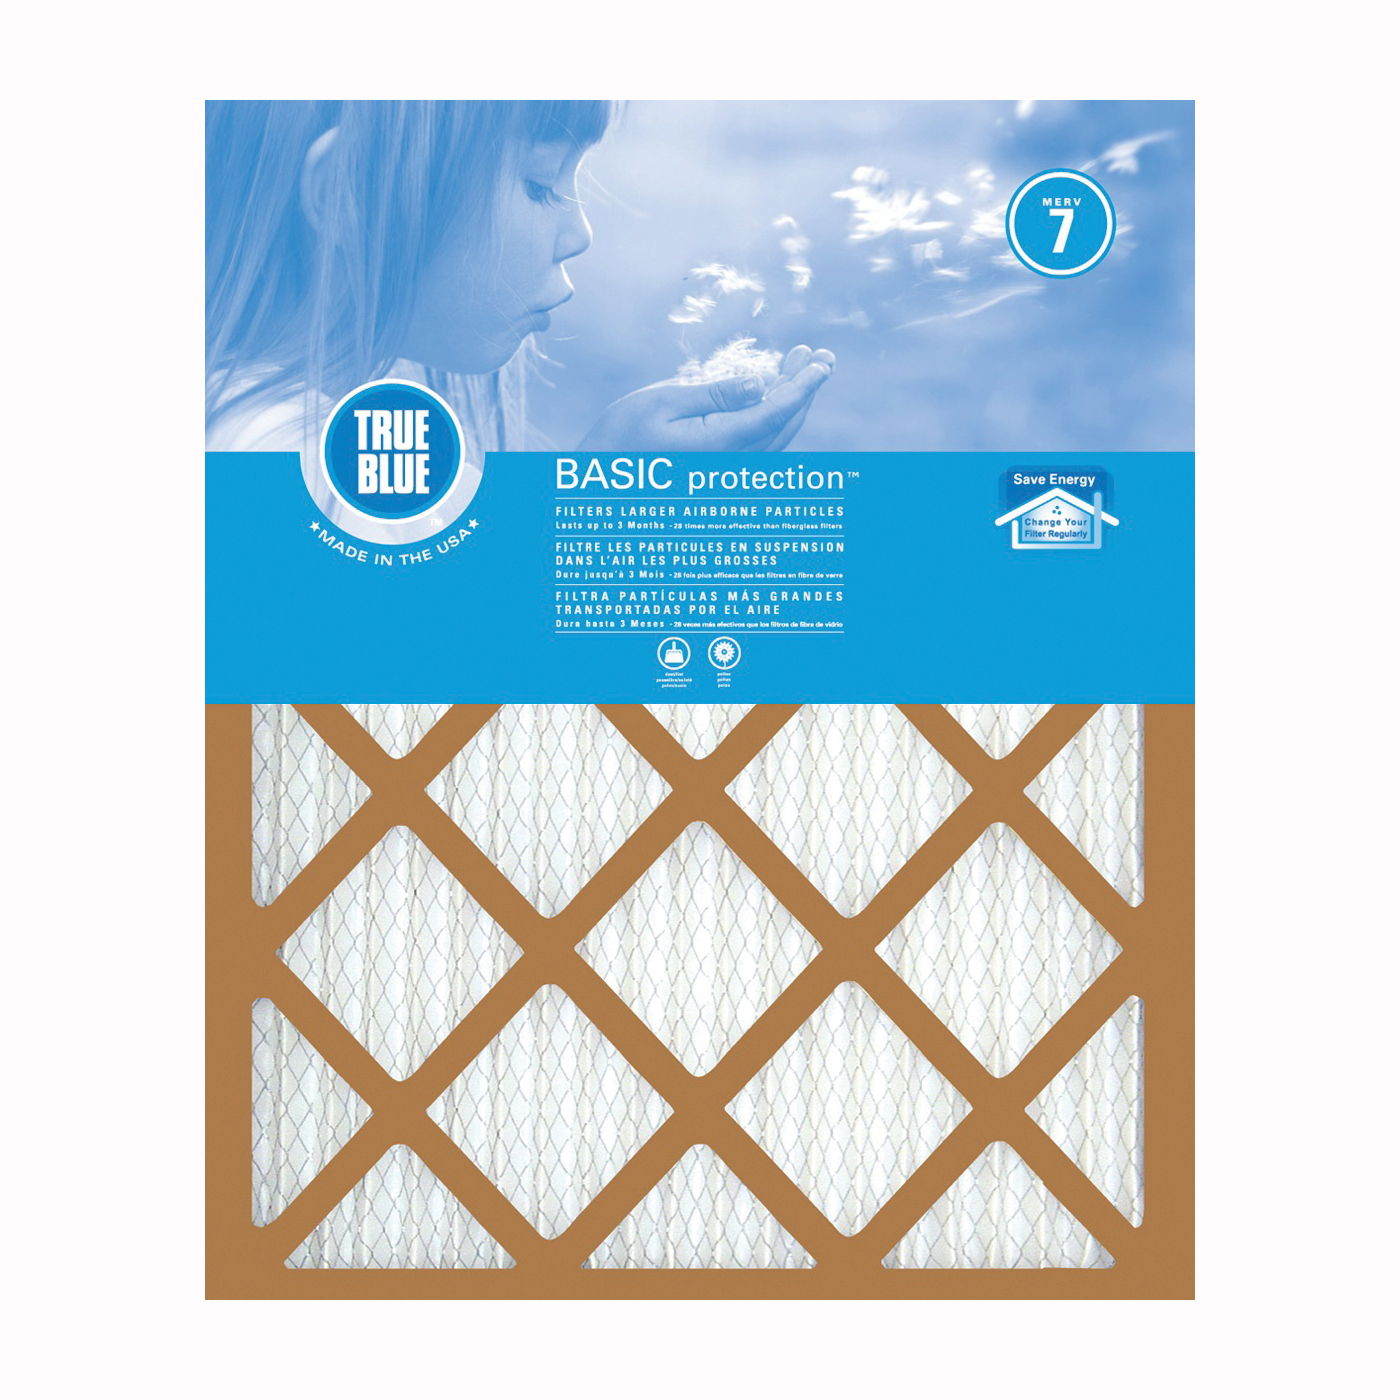 Picture of True Blue 216201 Air Filter, 20 in L, 16 in W, 7 MERV, 53.7 % Filter Efficiency, Synthetic Pleated Filter Media